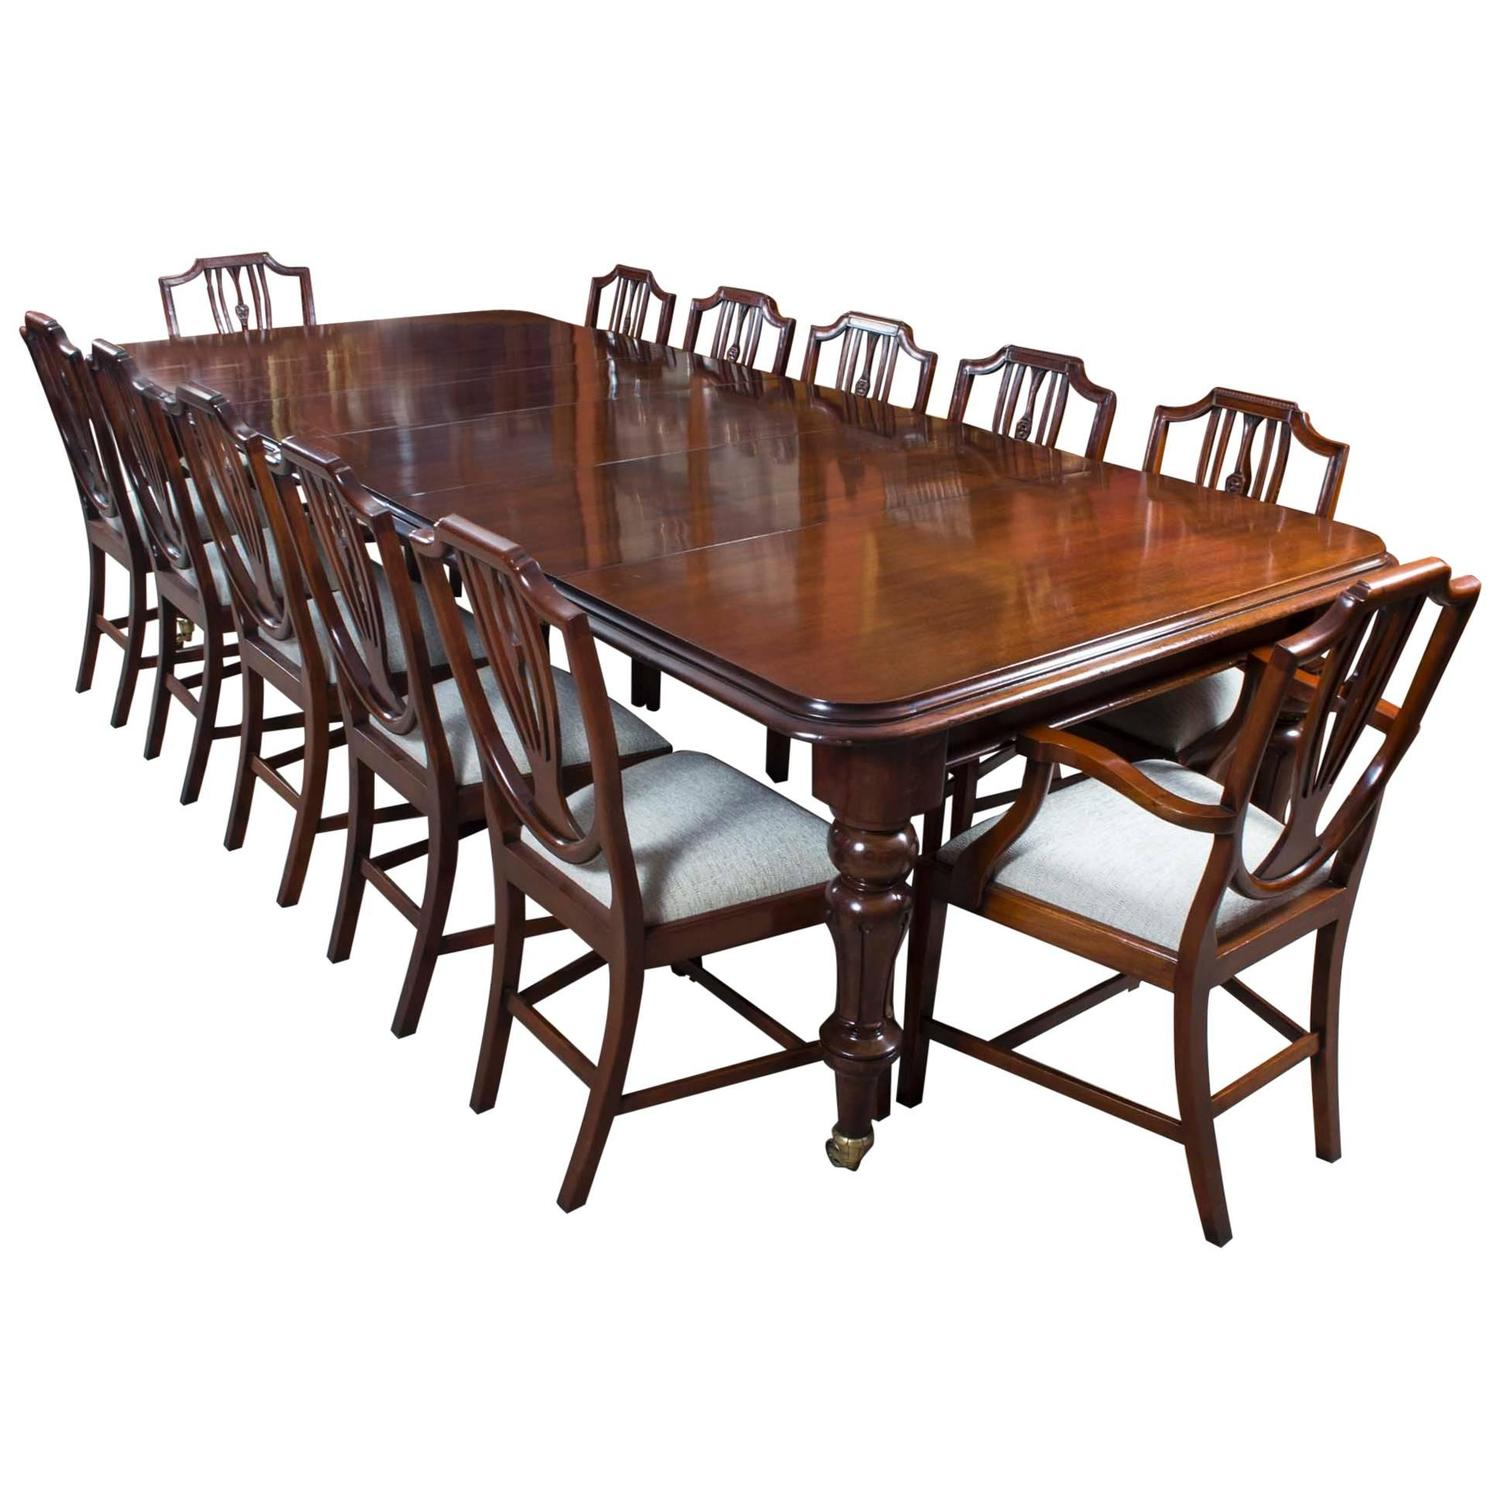 antique victorian mahogany dining table with 12 shield back chairs at 1stdibs. Black Bedroom Furniture Sets. Home Design Ideas